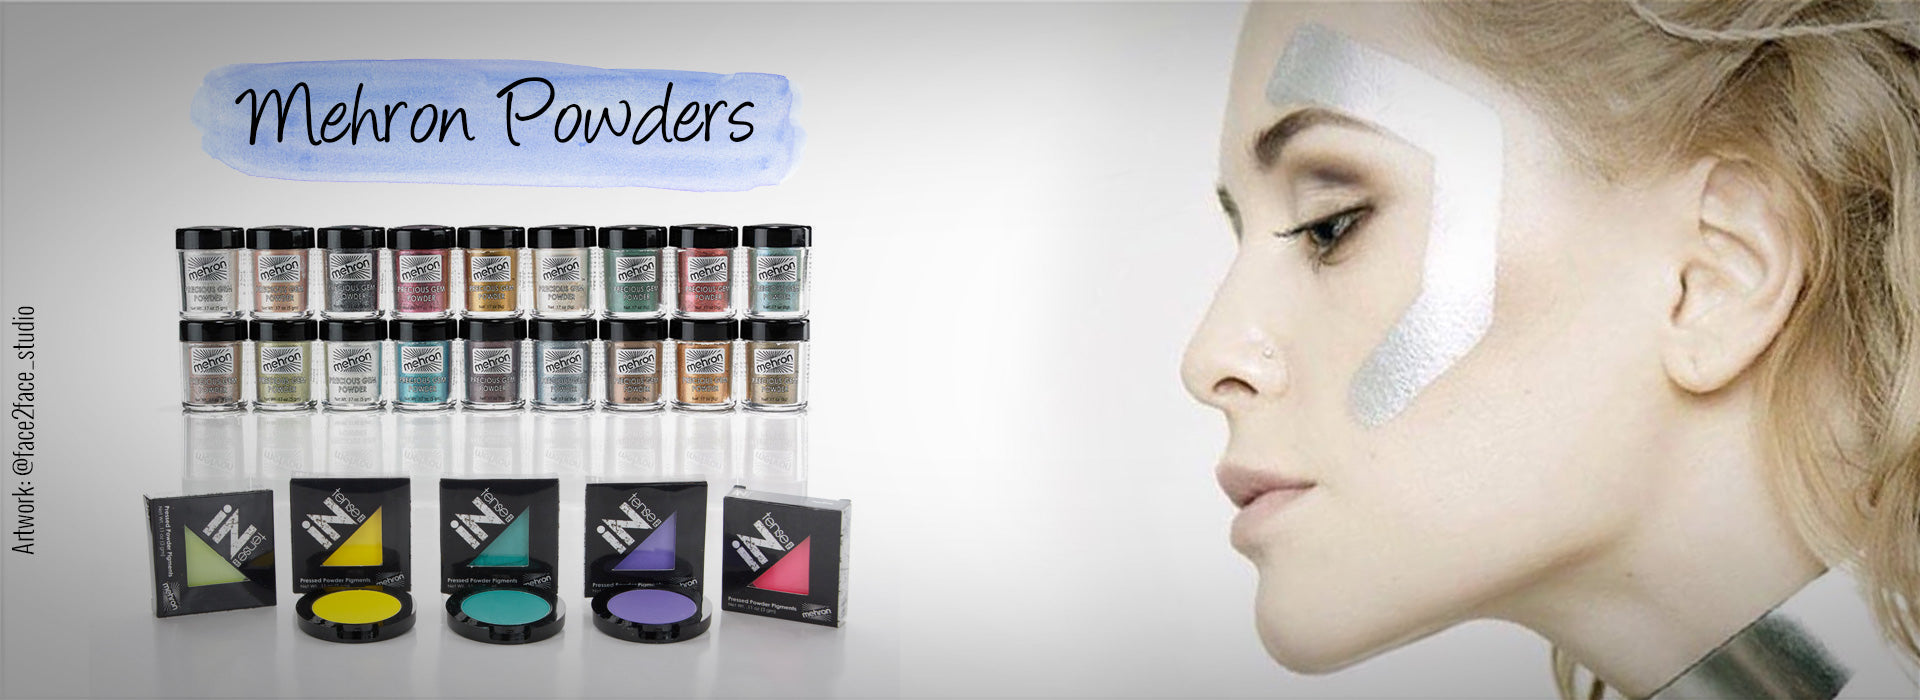 Mehron Powders